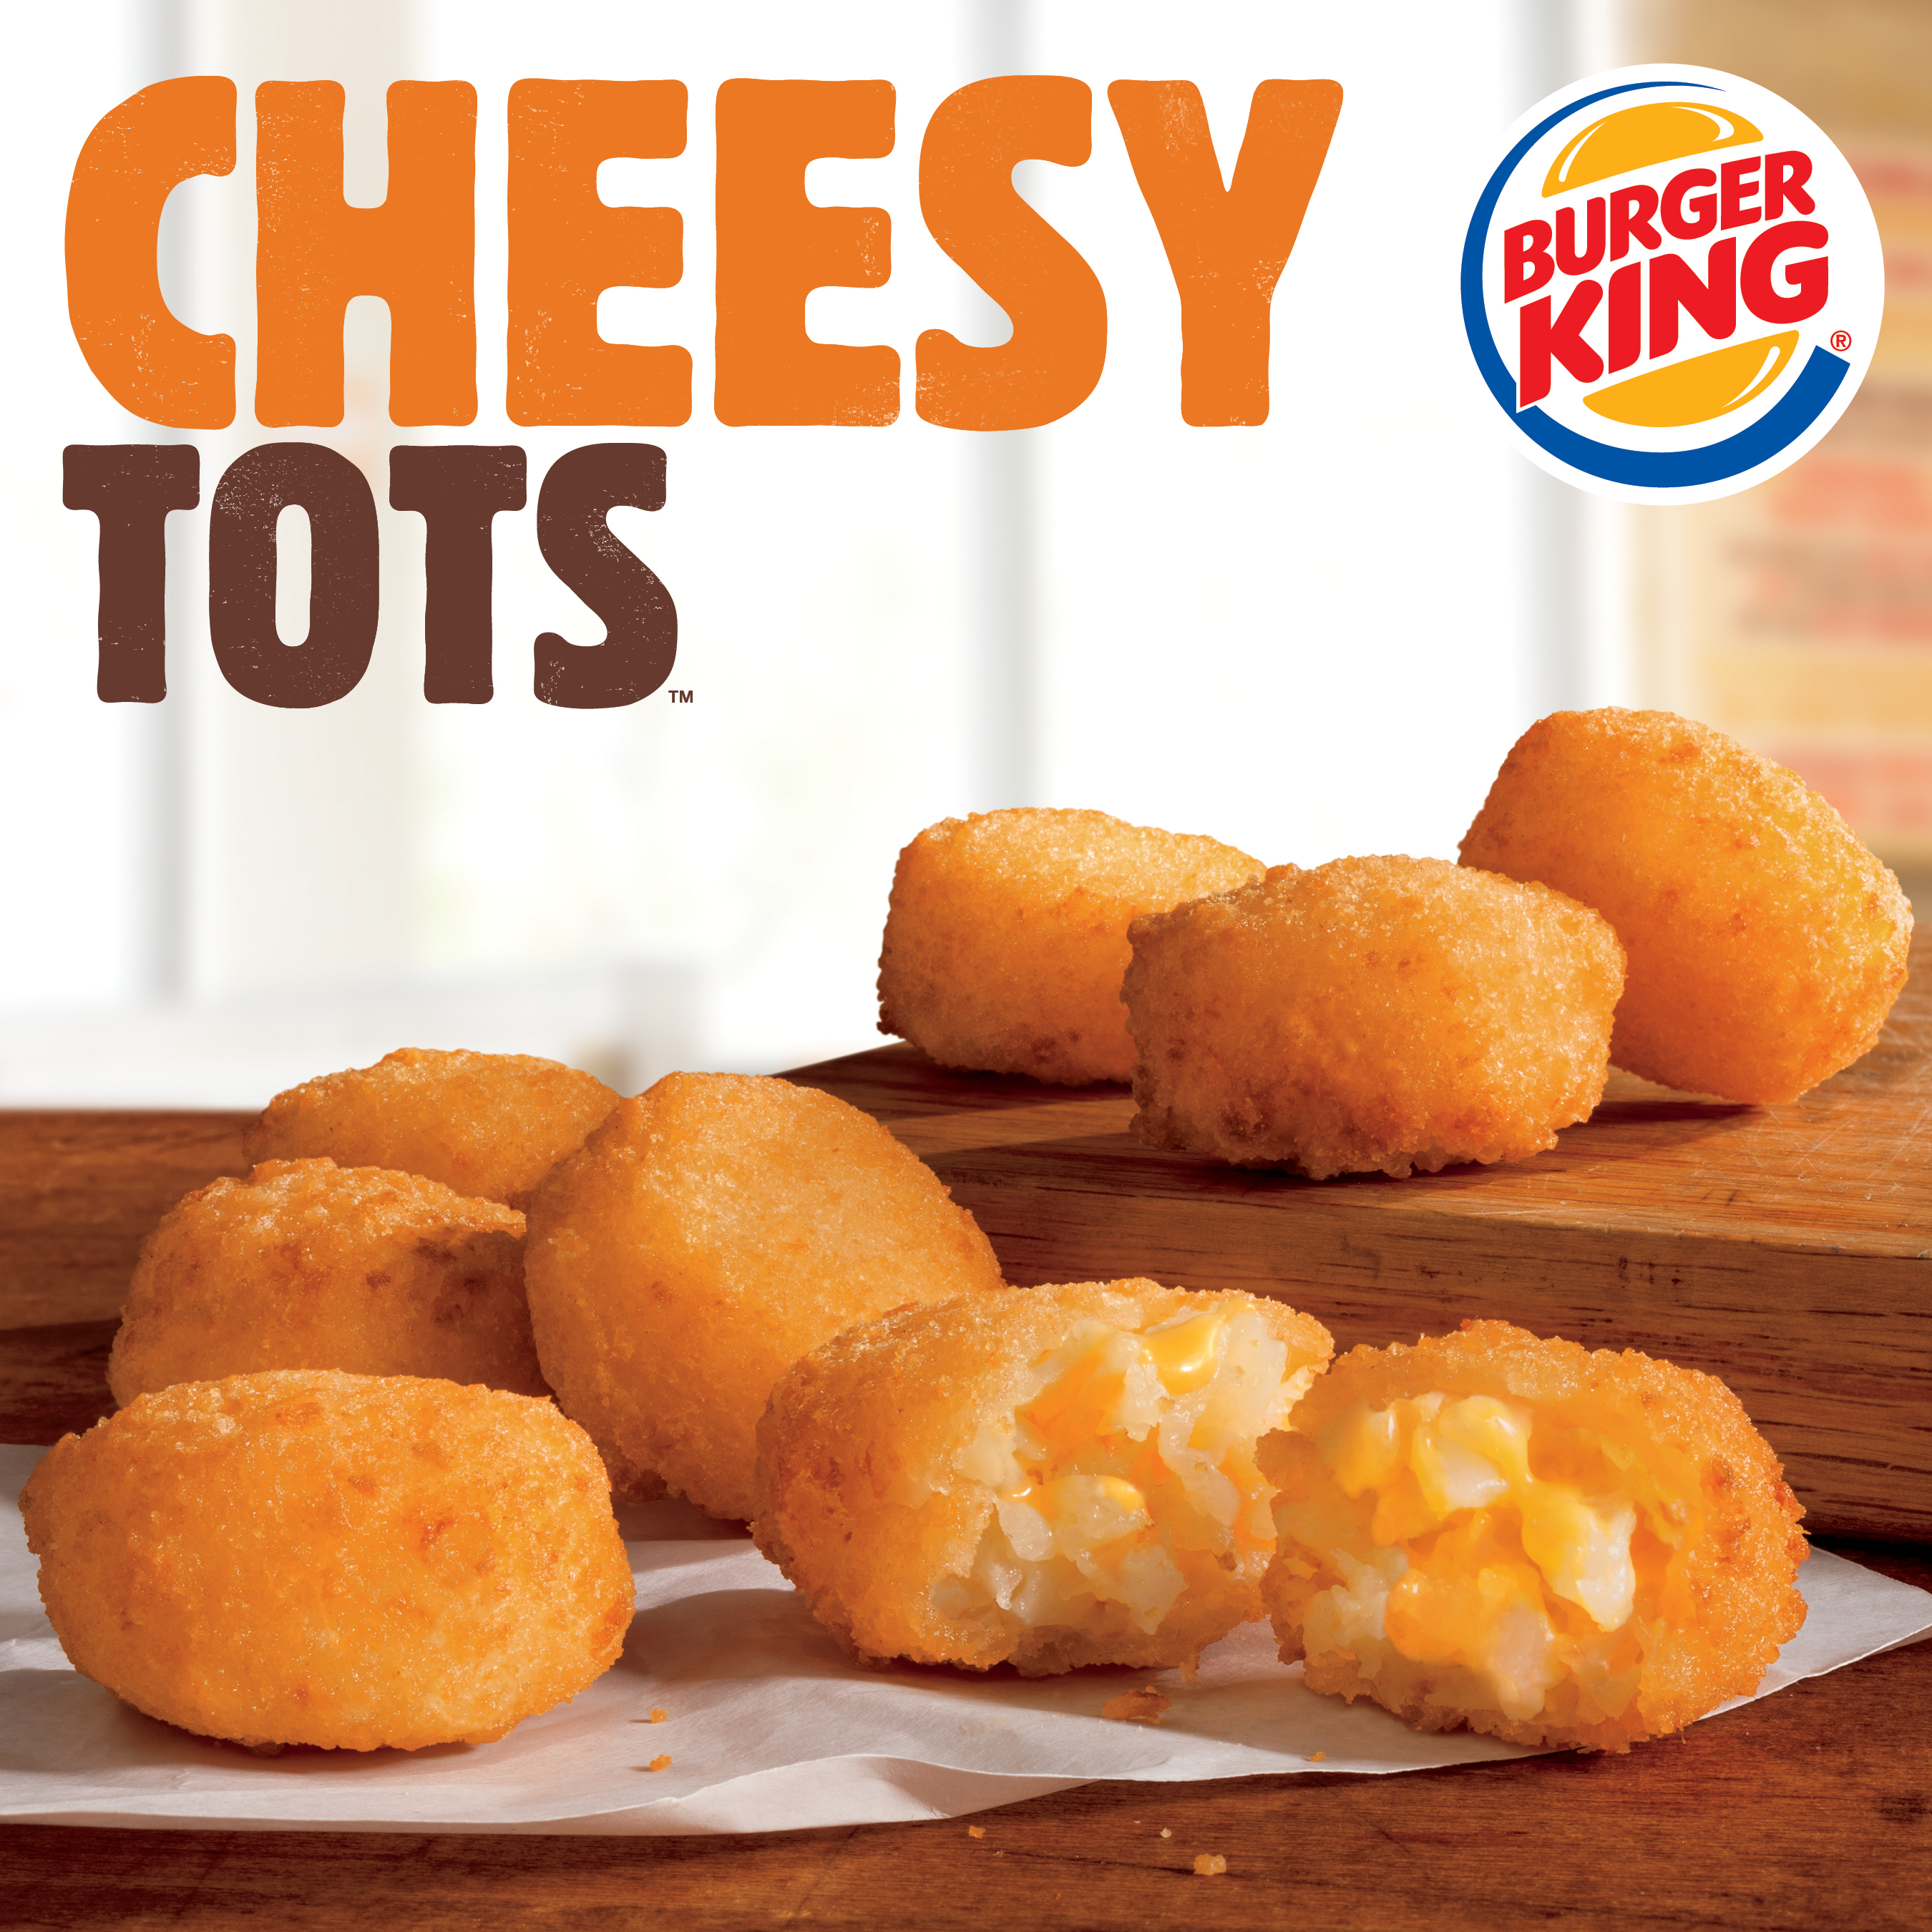 Burger King's Cheesy Tots.